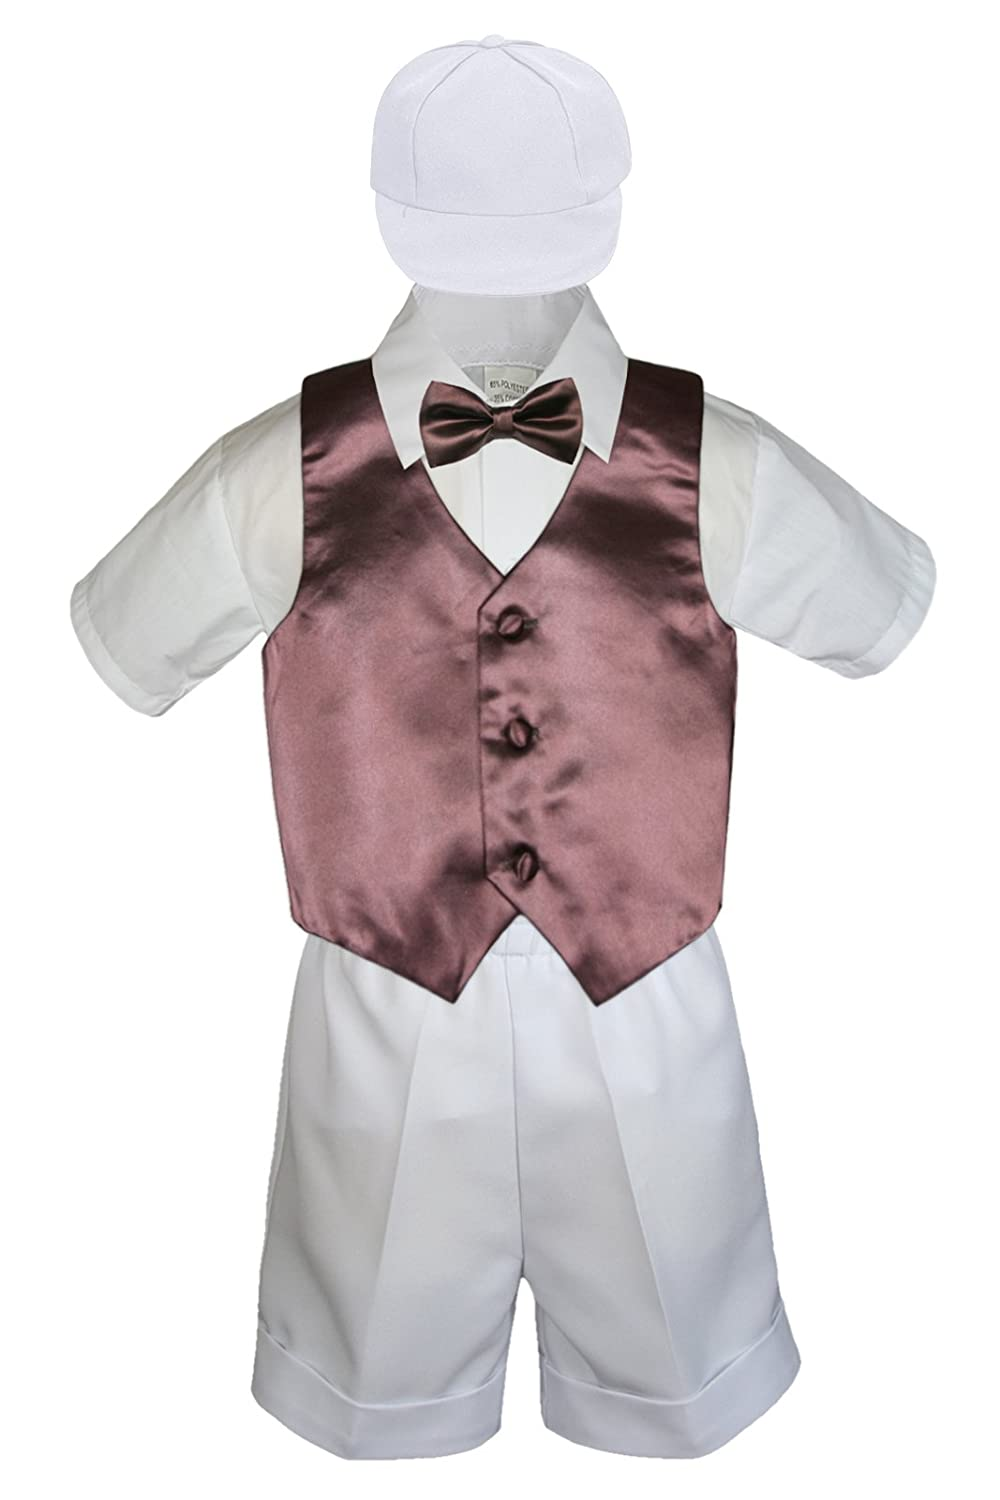 5pc Baby Toddlers Boy Brown Vest Bow Tie Sets White Suits Outfits S-4T (S:(0-6 months))